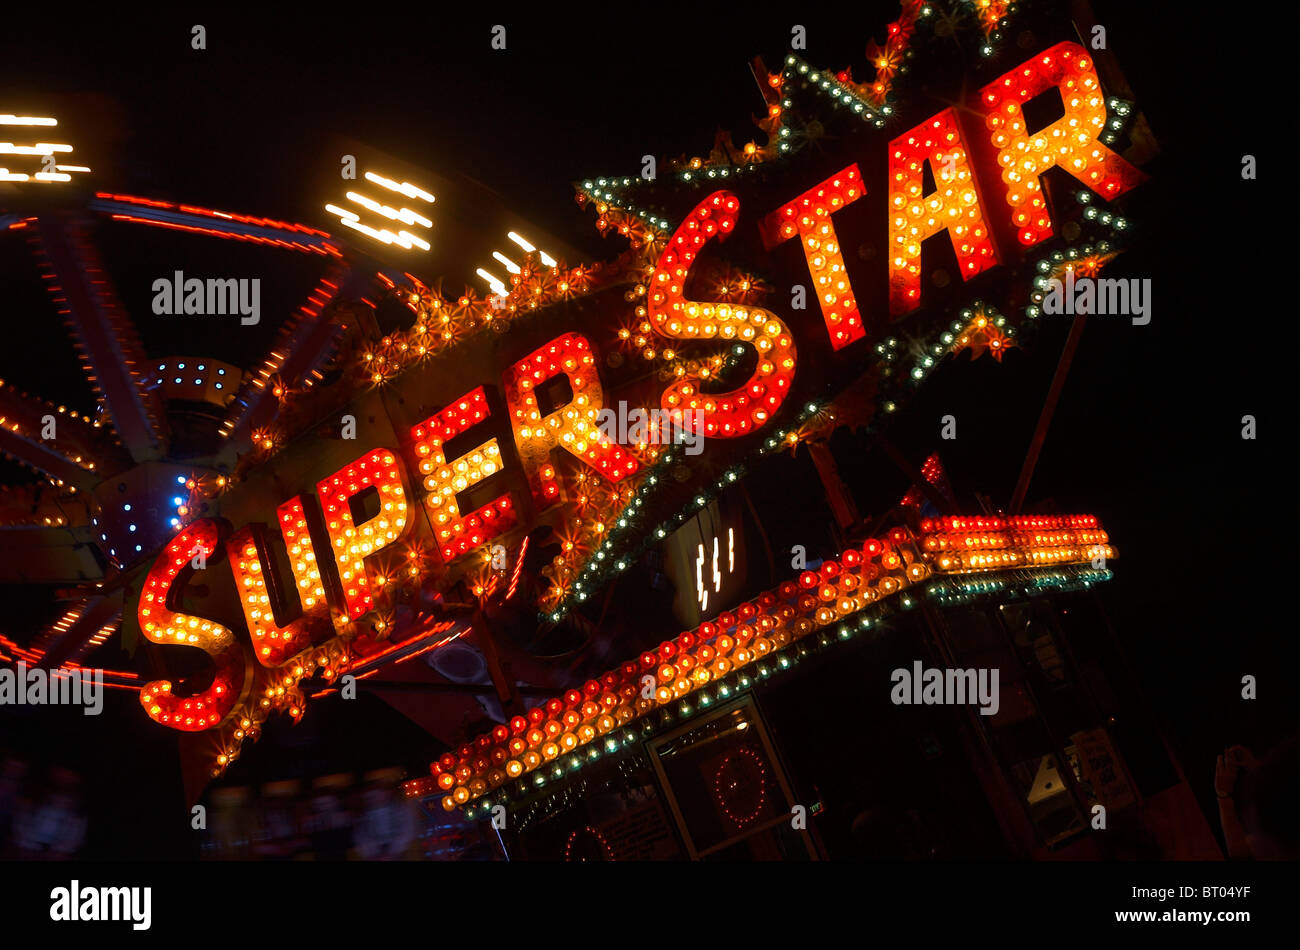 Neon Lights 'Super Star' - Stock Image